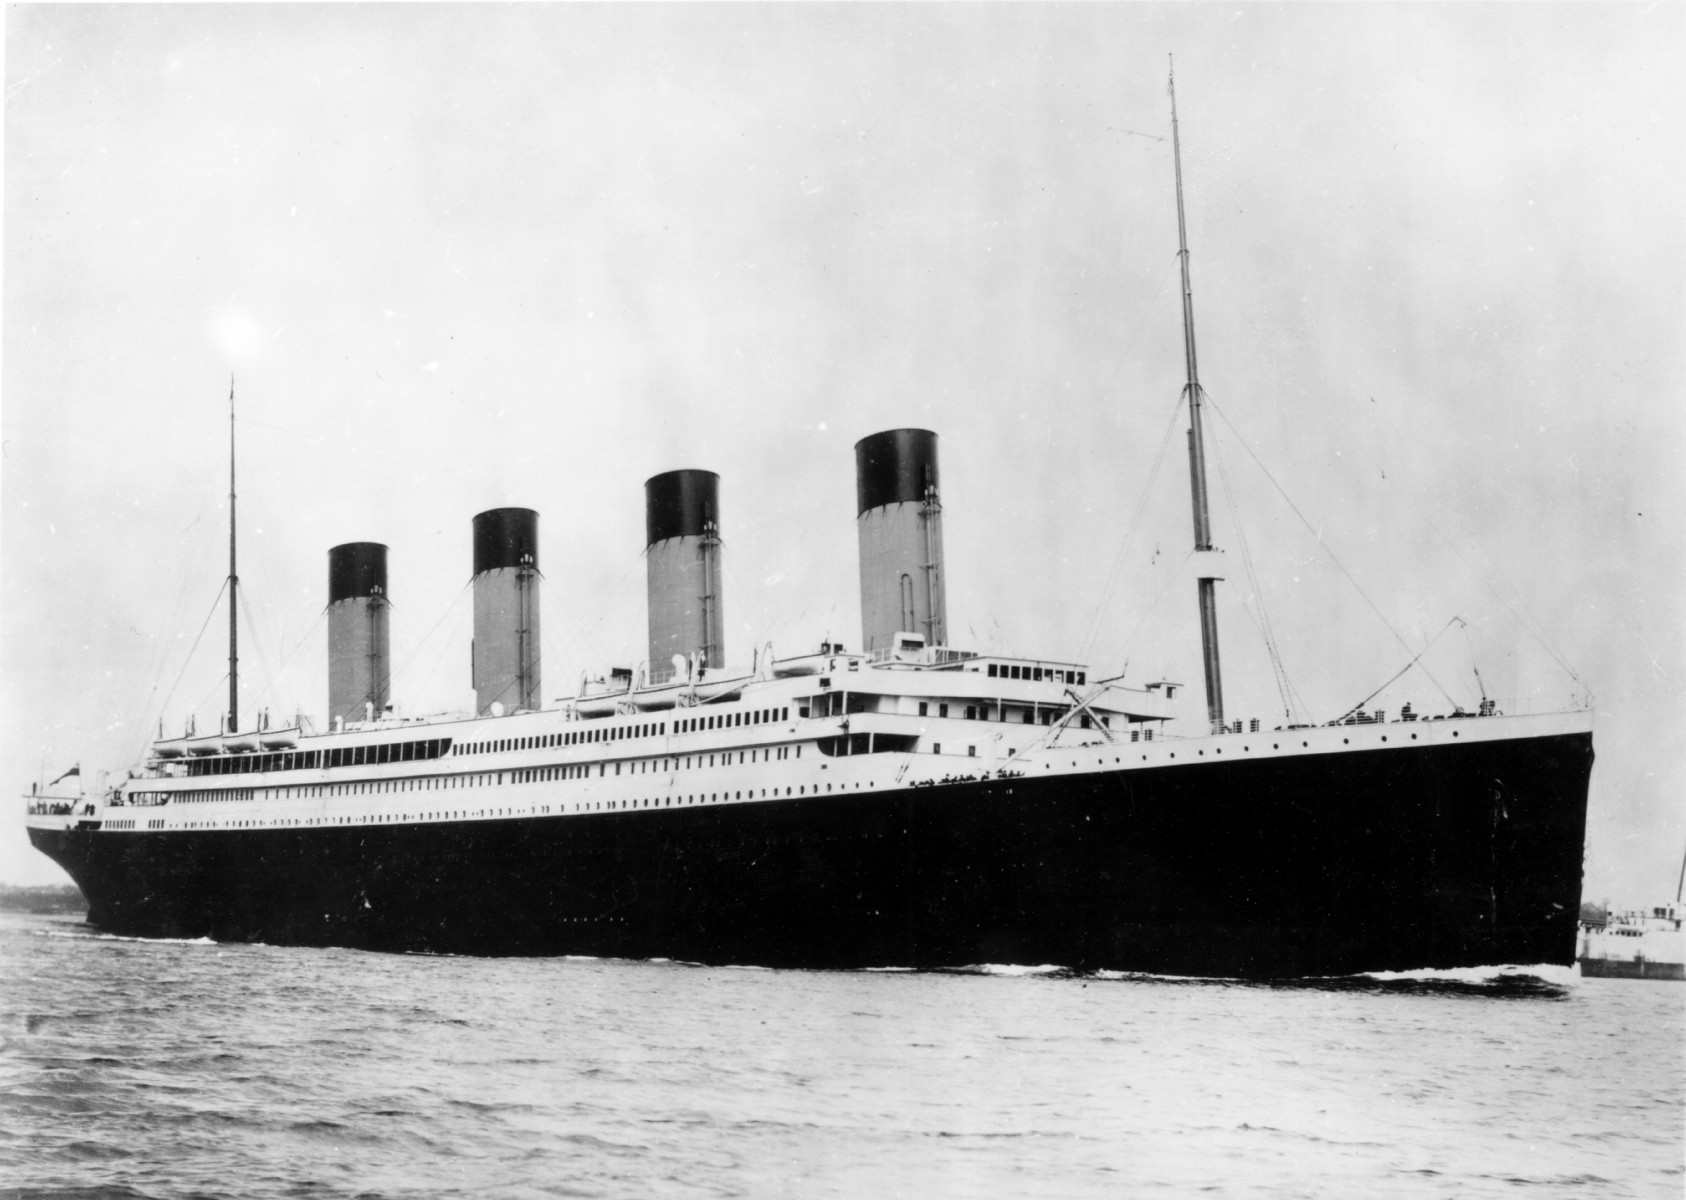 The R.M.S. Titanic departed from Southampton, England, for the first and only time on April 10th, 1912. The Titanic had nine decks with separate areas for first-class, second-class, and third-class passengers. There were close to 2,200 people aboard for the ship's maiden voyage.